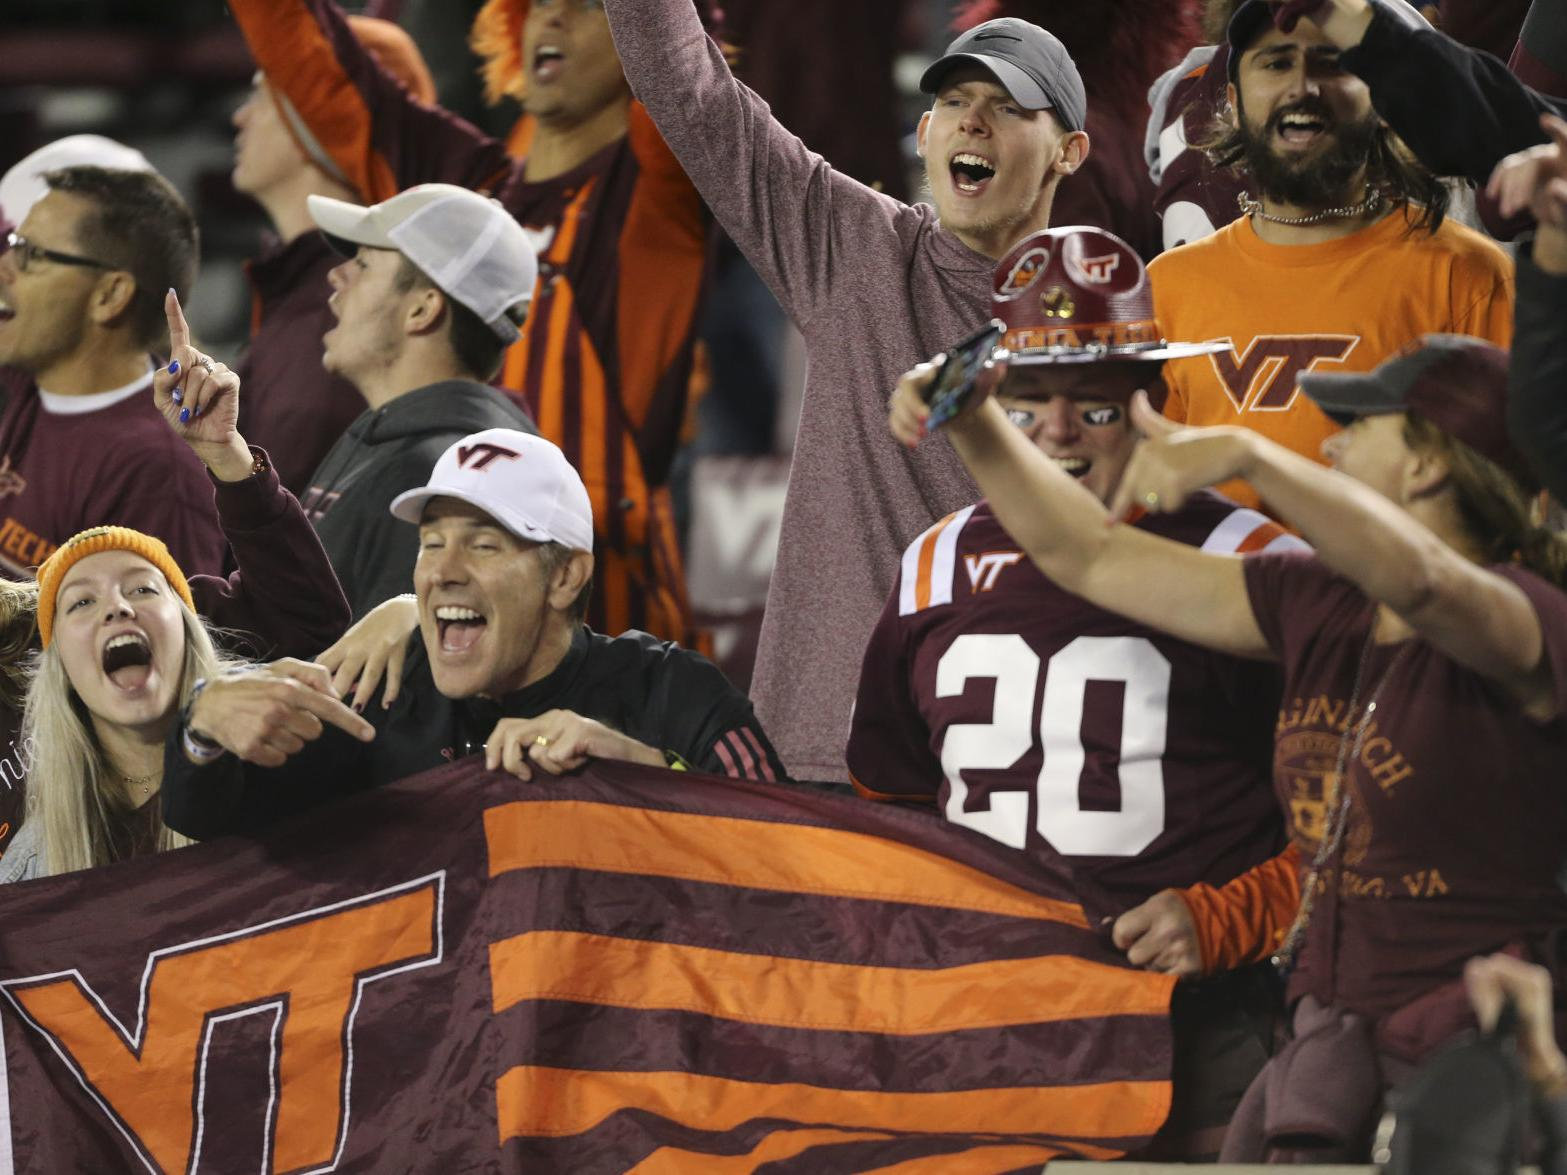 Virginia Tech Penn State Game Called Off Acc Considering Only Playing Conference Games Virginia Tech Richmond Com